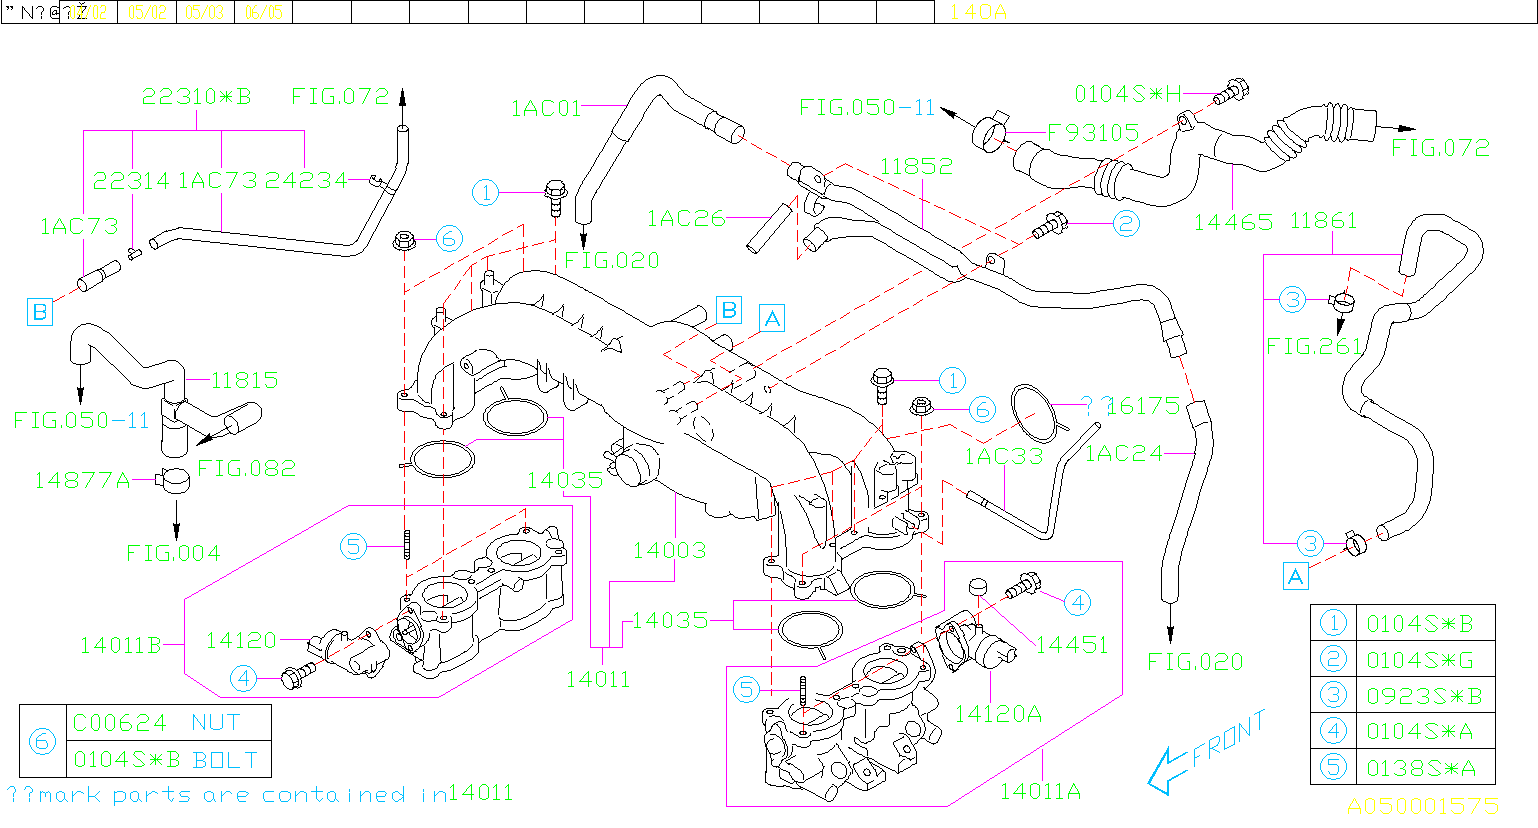 Part 1AC33 seems to connect directly to the BOV and to the intake header  using the small nipple on the left side of the intake manifold. If that's  the case, ...